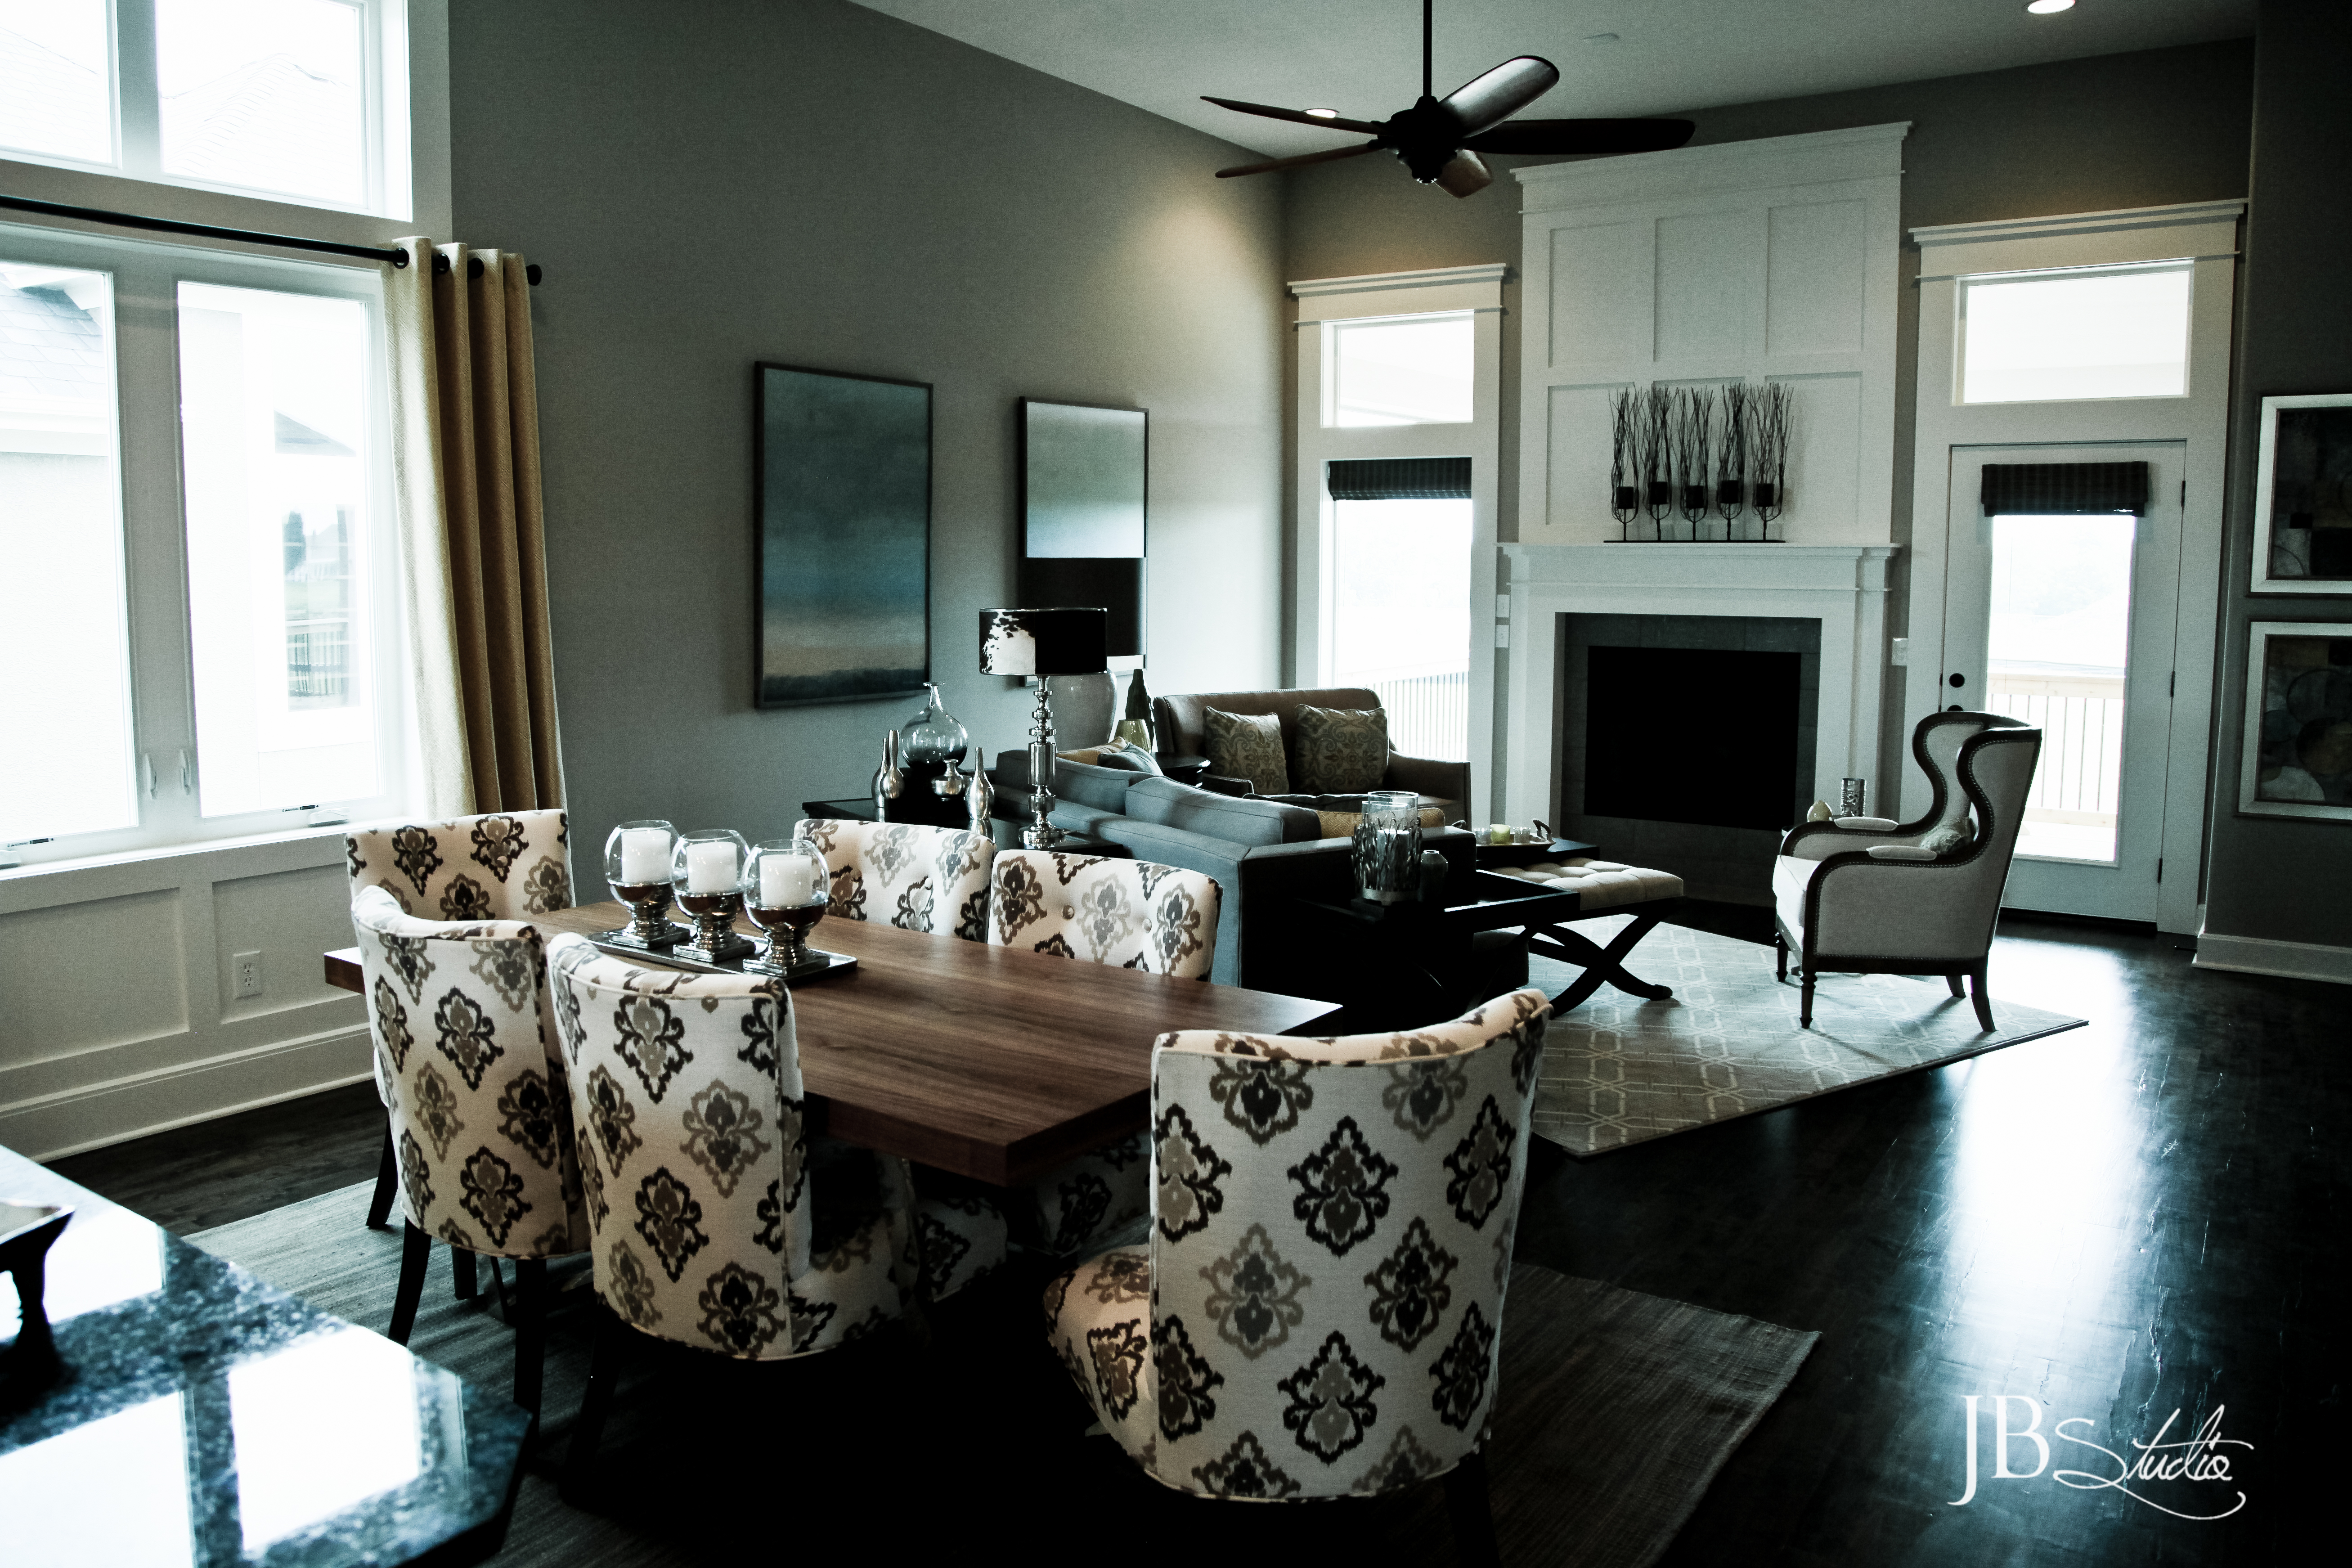 Family room view srs design interior design north kansas for Interior designer design kansas city